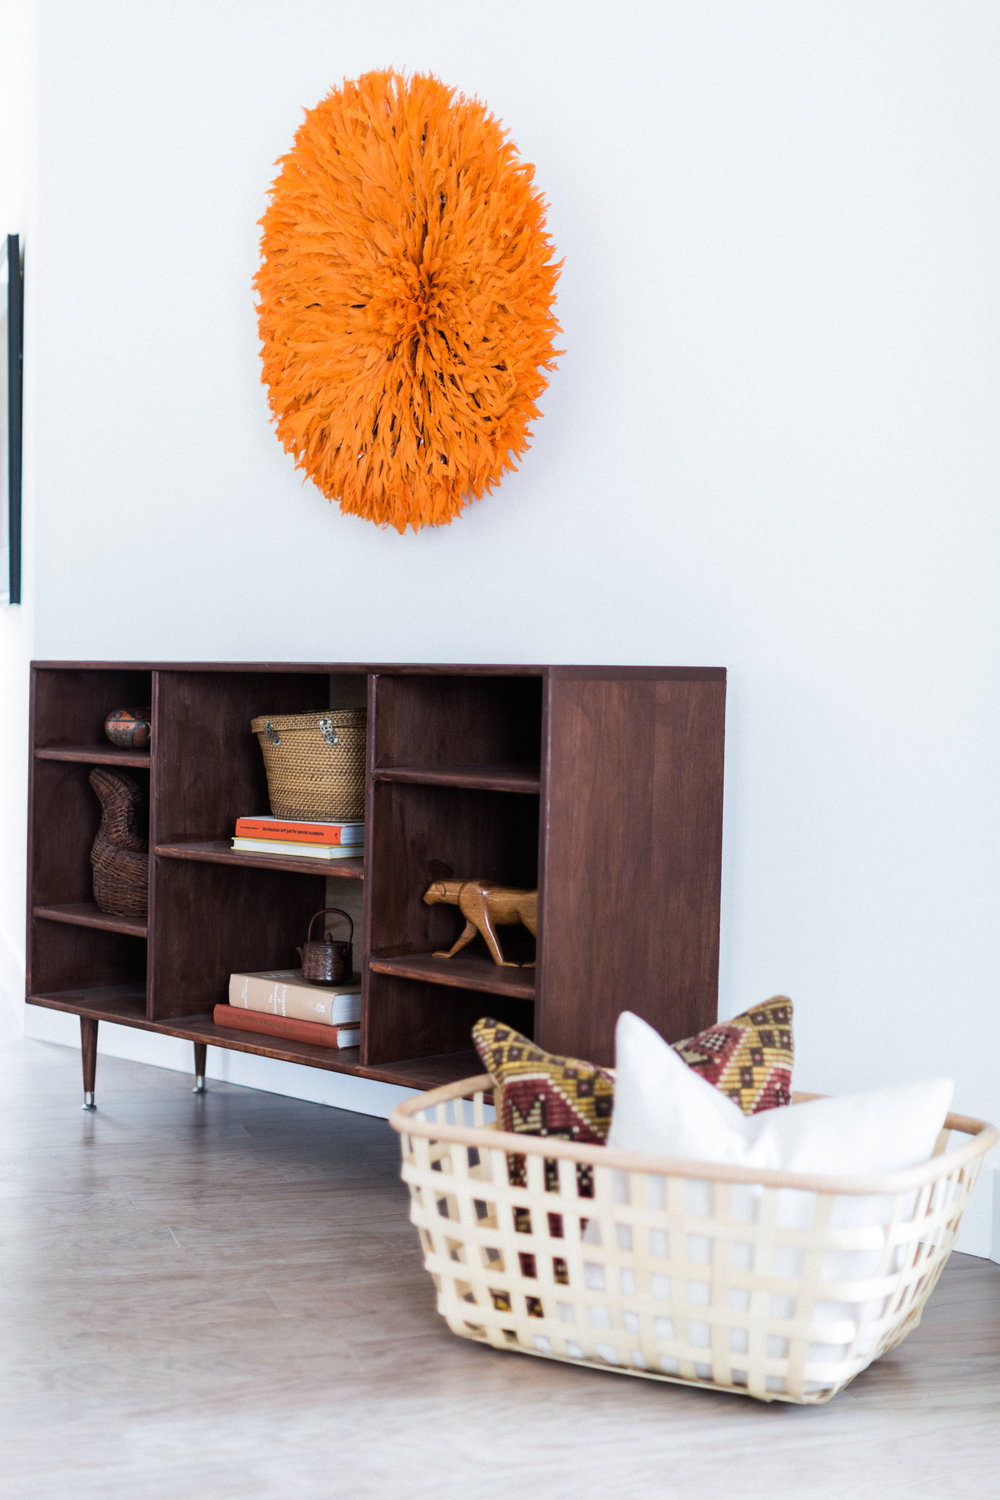 At the entry, this bookcase from LA's Moti Roma holds treasures. And nothing says welcome like a Cameroonian juju feather headdress in shocking orange. We even love IKEA's Viktigt basket to hold more kilim-y goodness.